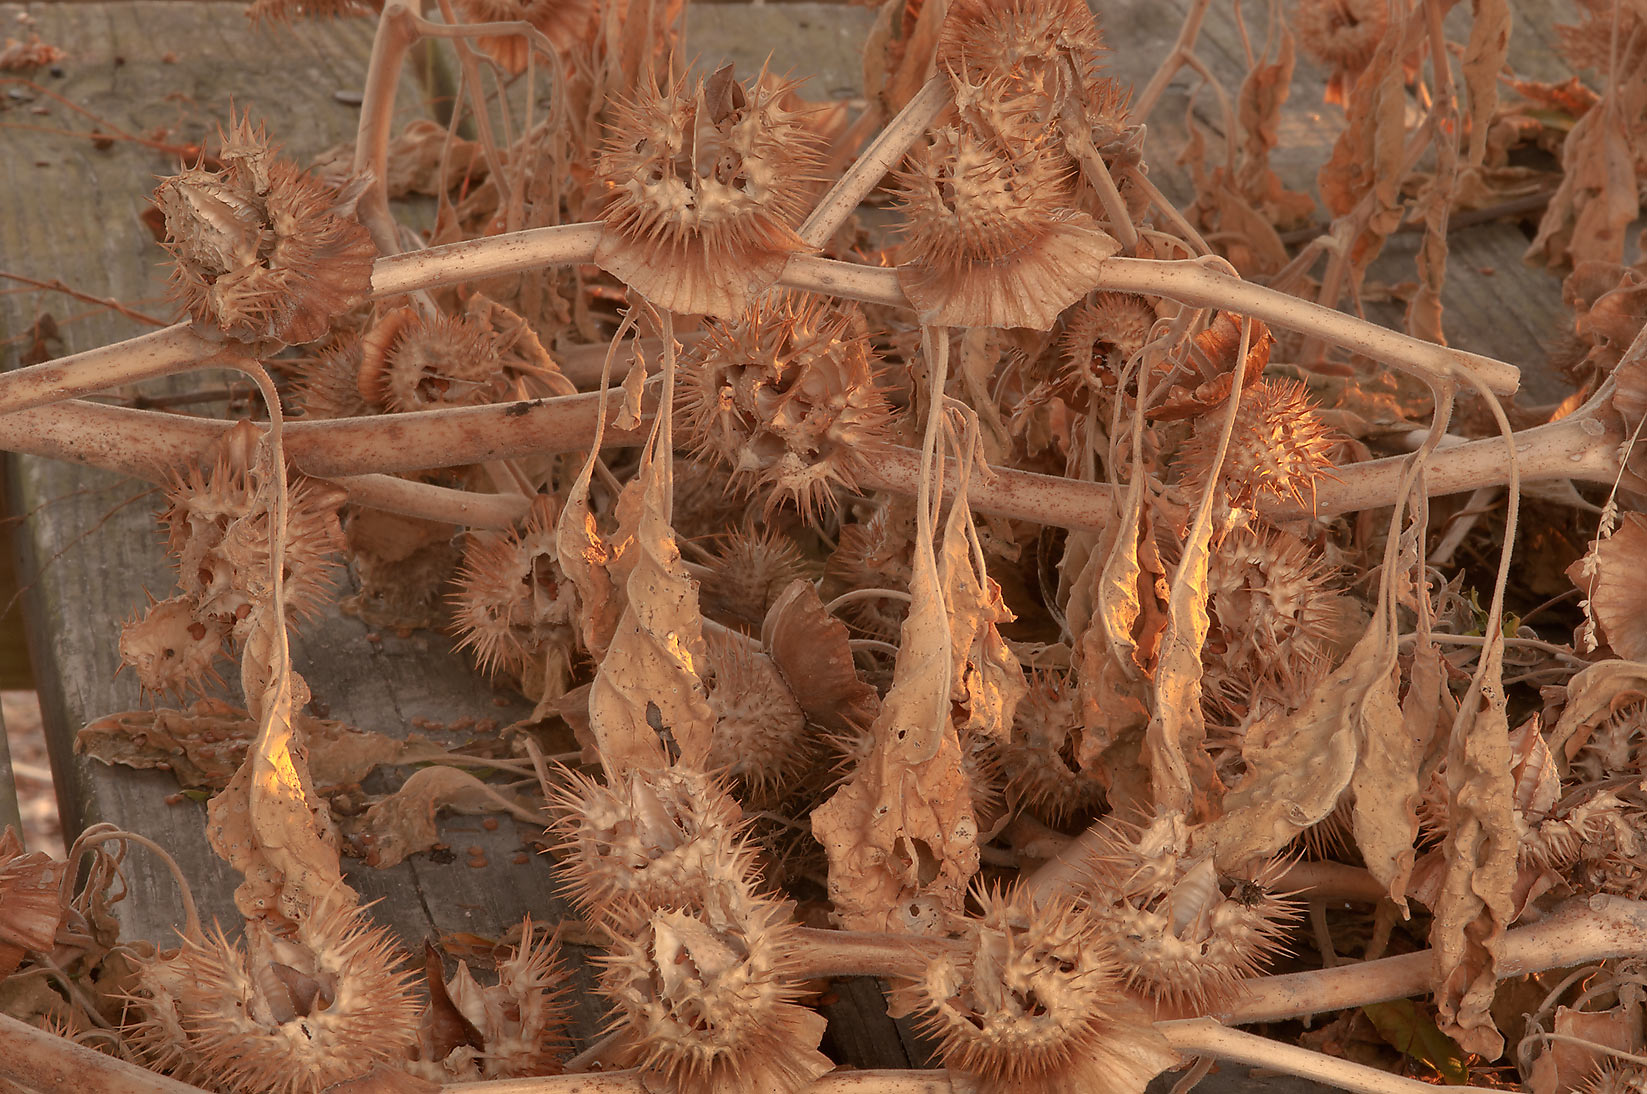 Dry jimsonweed (datura) with seeds in TAMU...M University. College Station, Texas